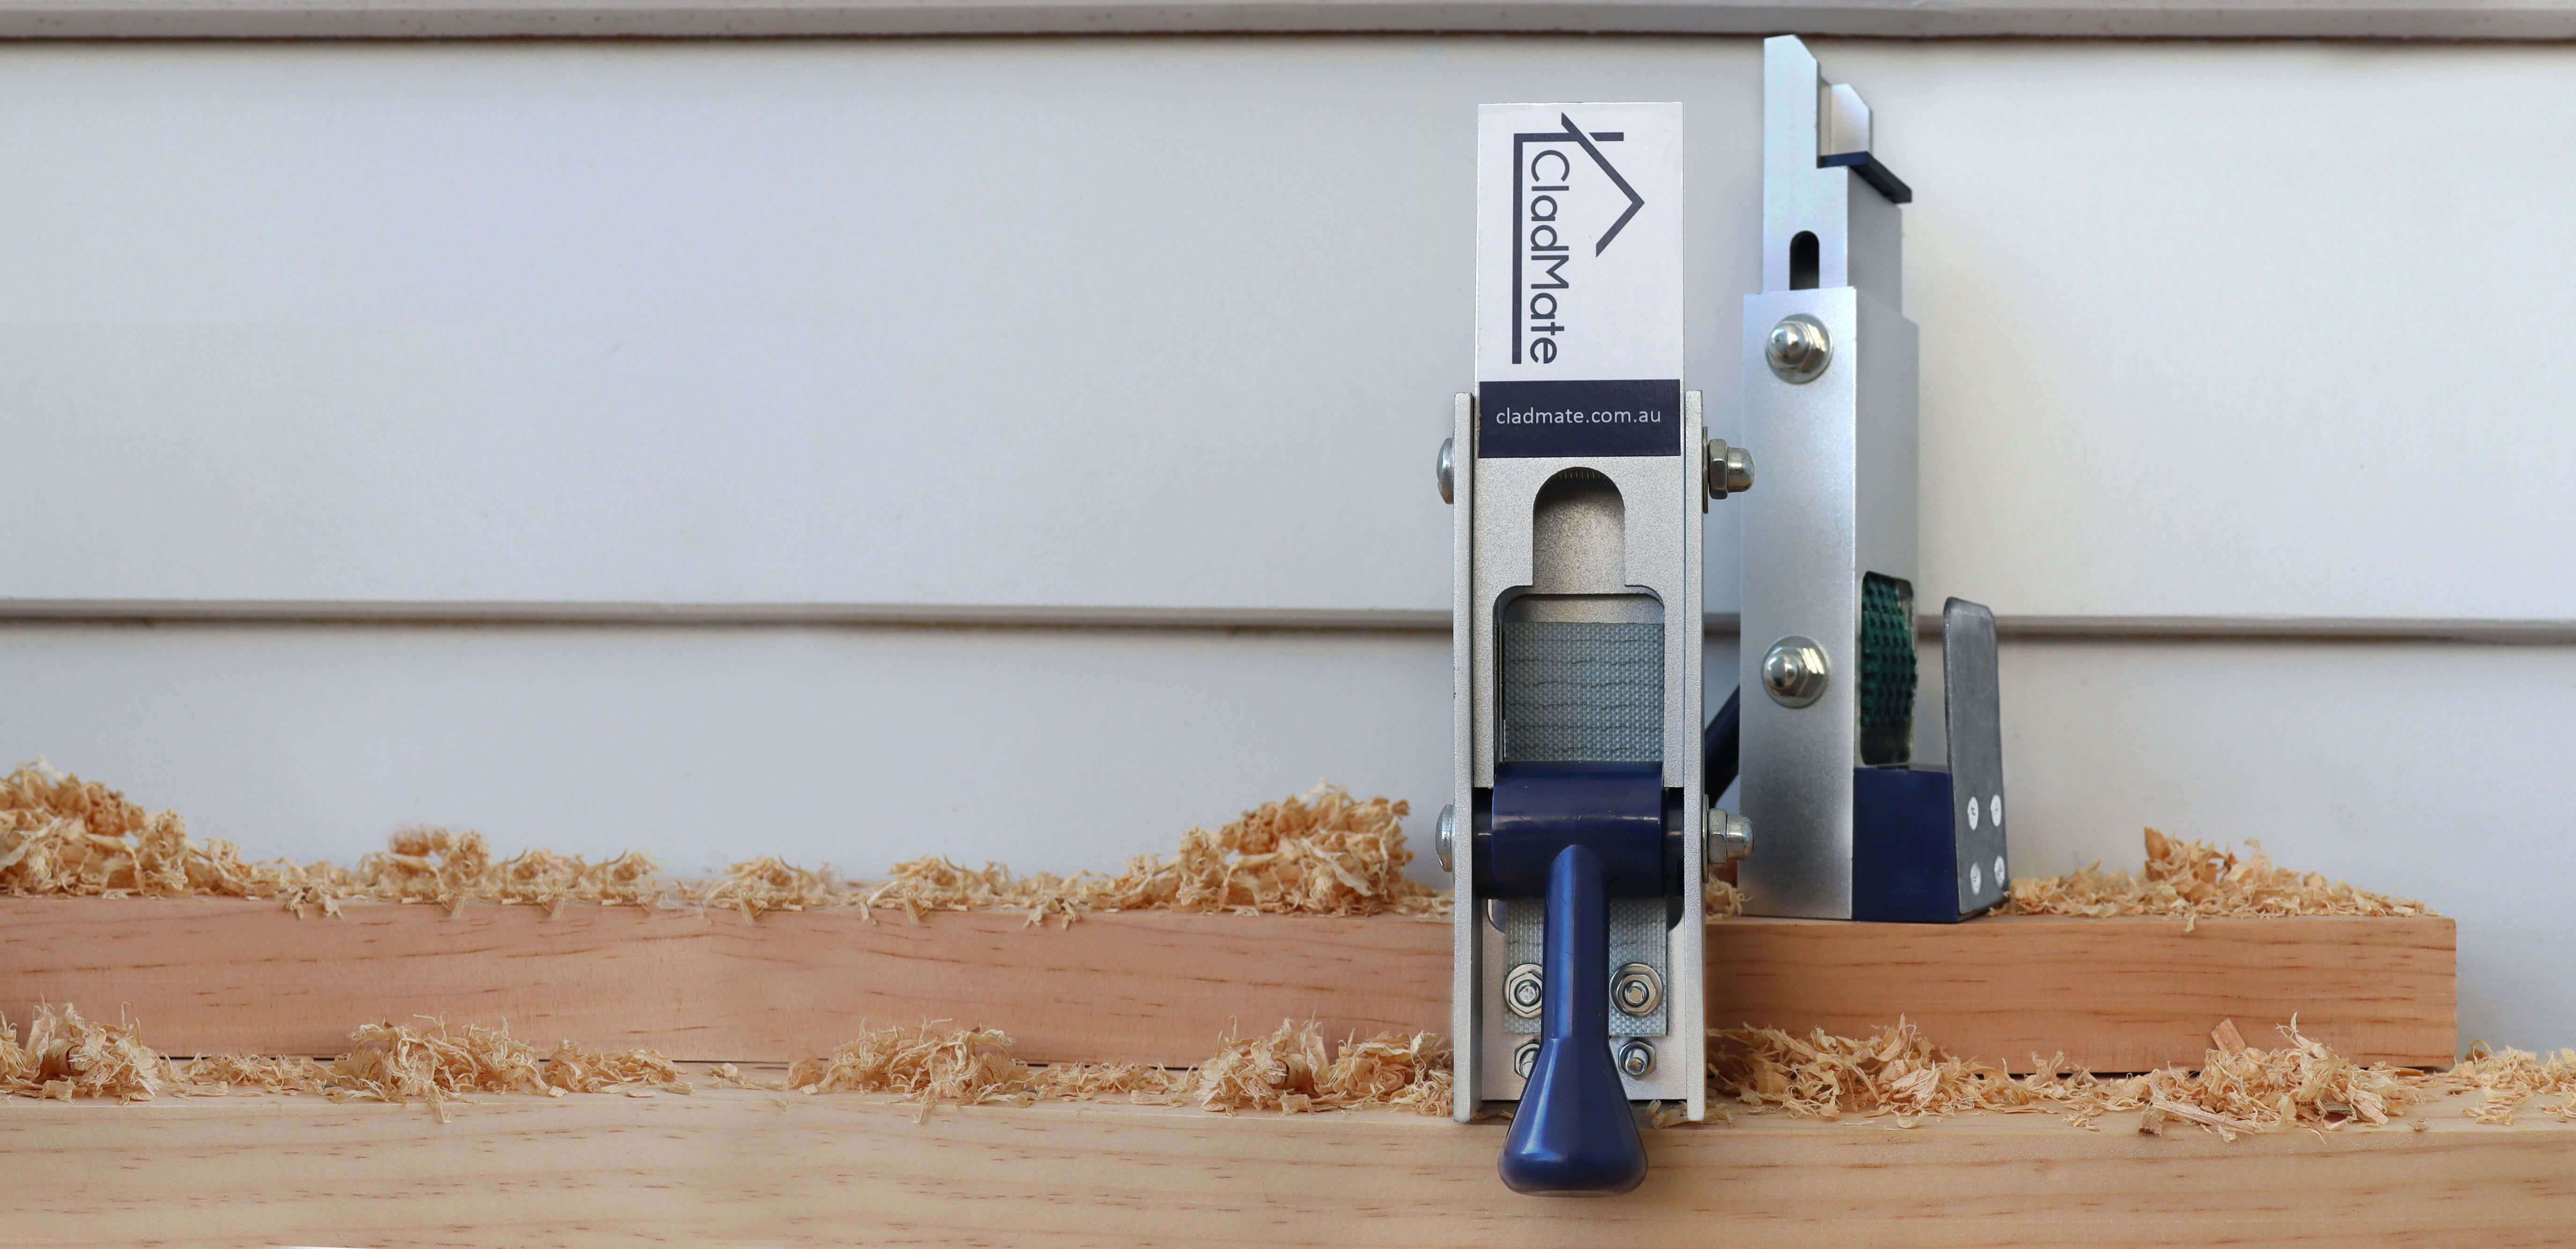 CladMate Weatherboard Clamps Install WeatherBoards Twice as Fast